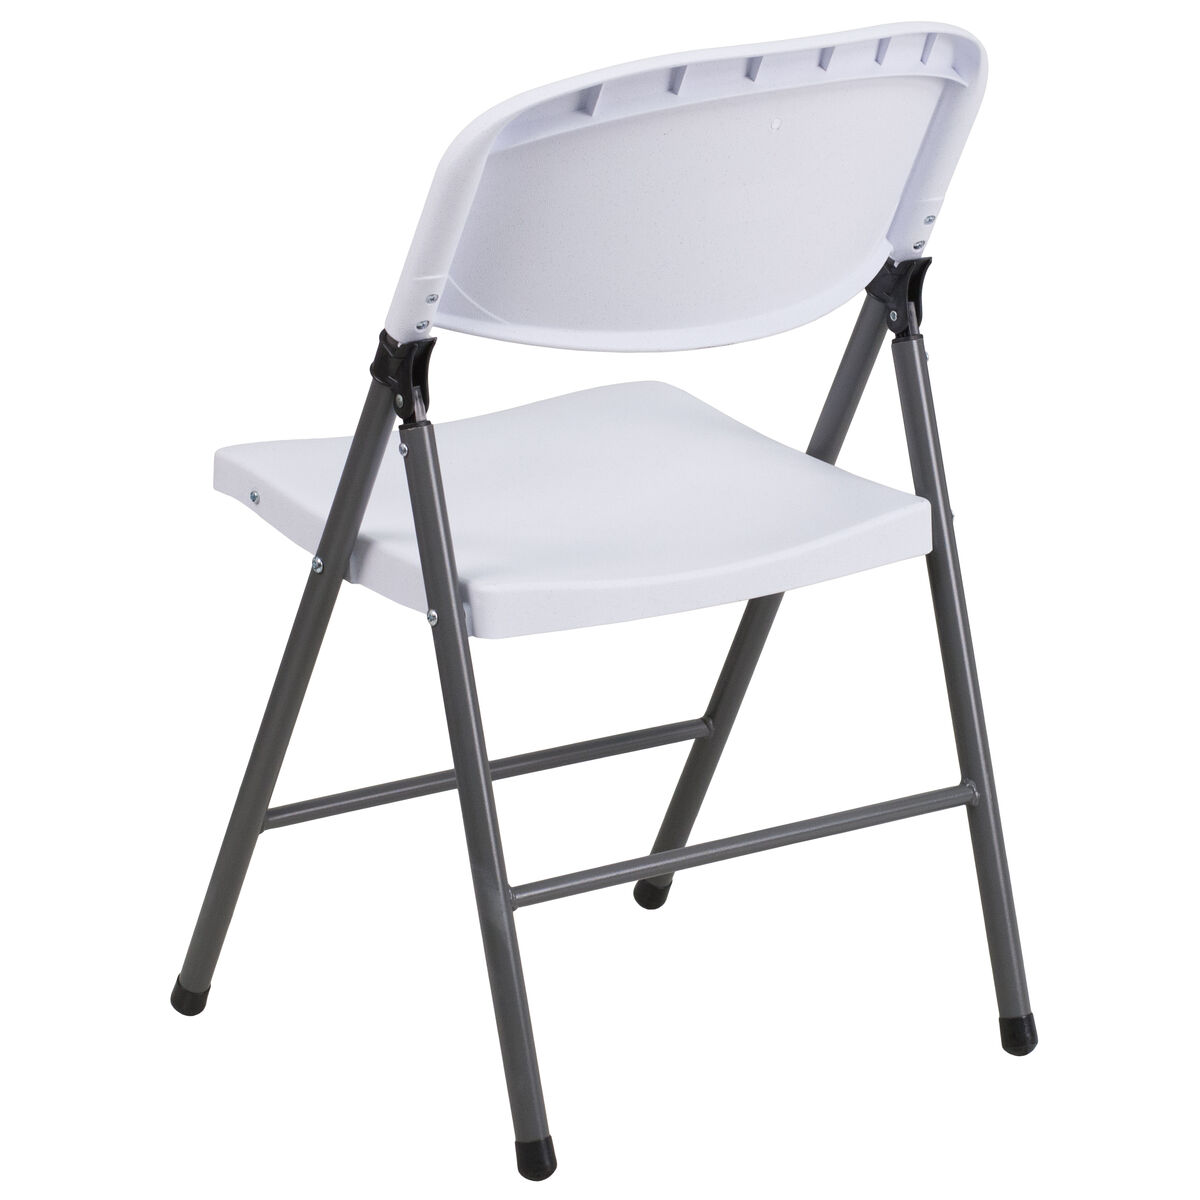 Astonishing Hercules Series 330 Lb Capacity Granite White Plastic Folding Chair With Charcoal Frame Caraccident5 Cool Chair Designs And Ideas Caraccident5Info